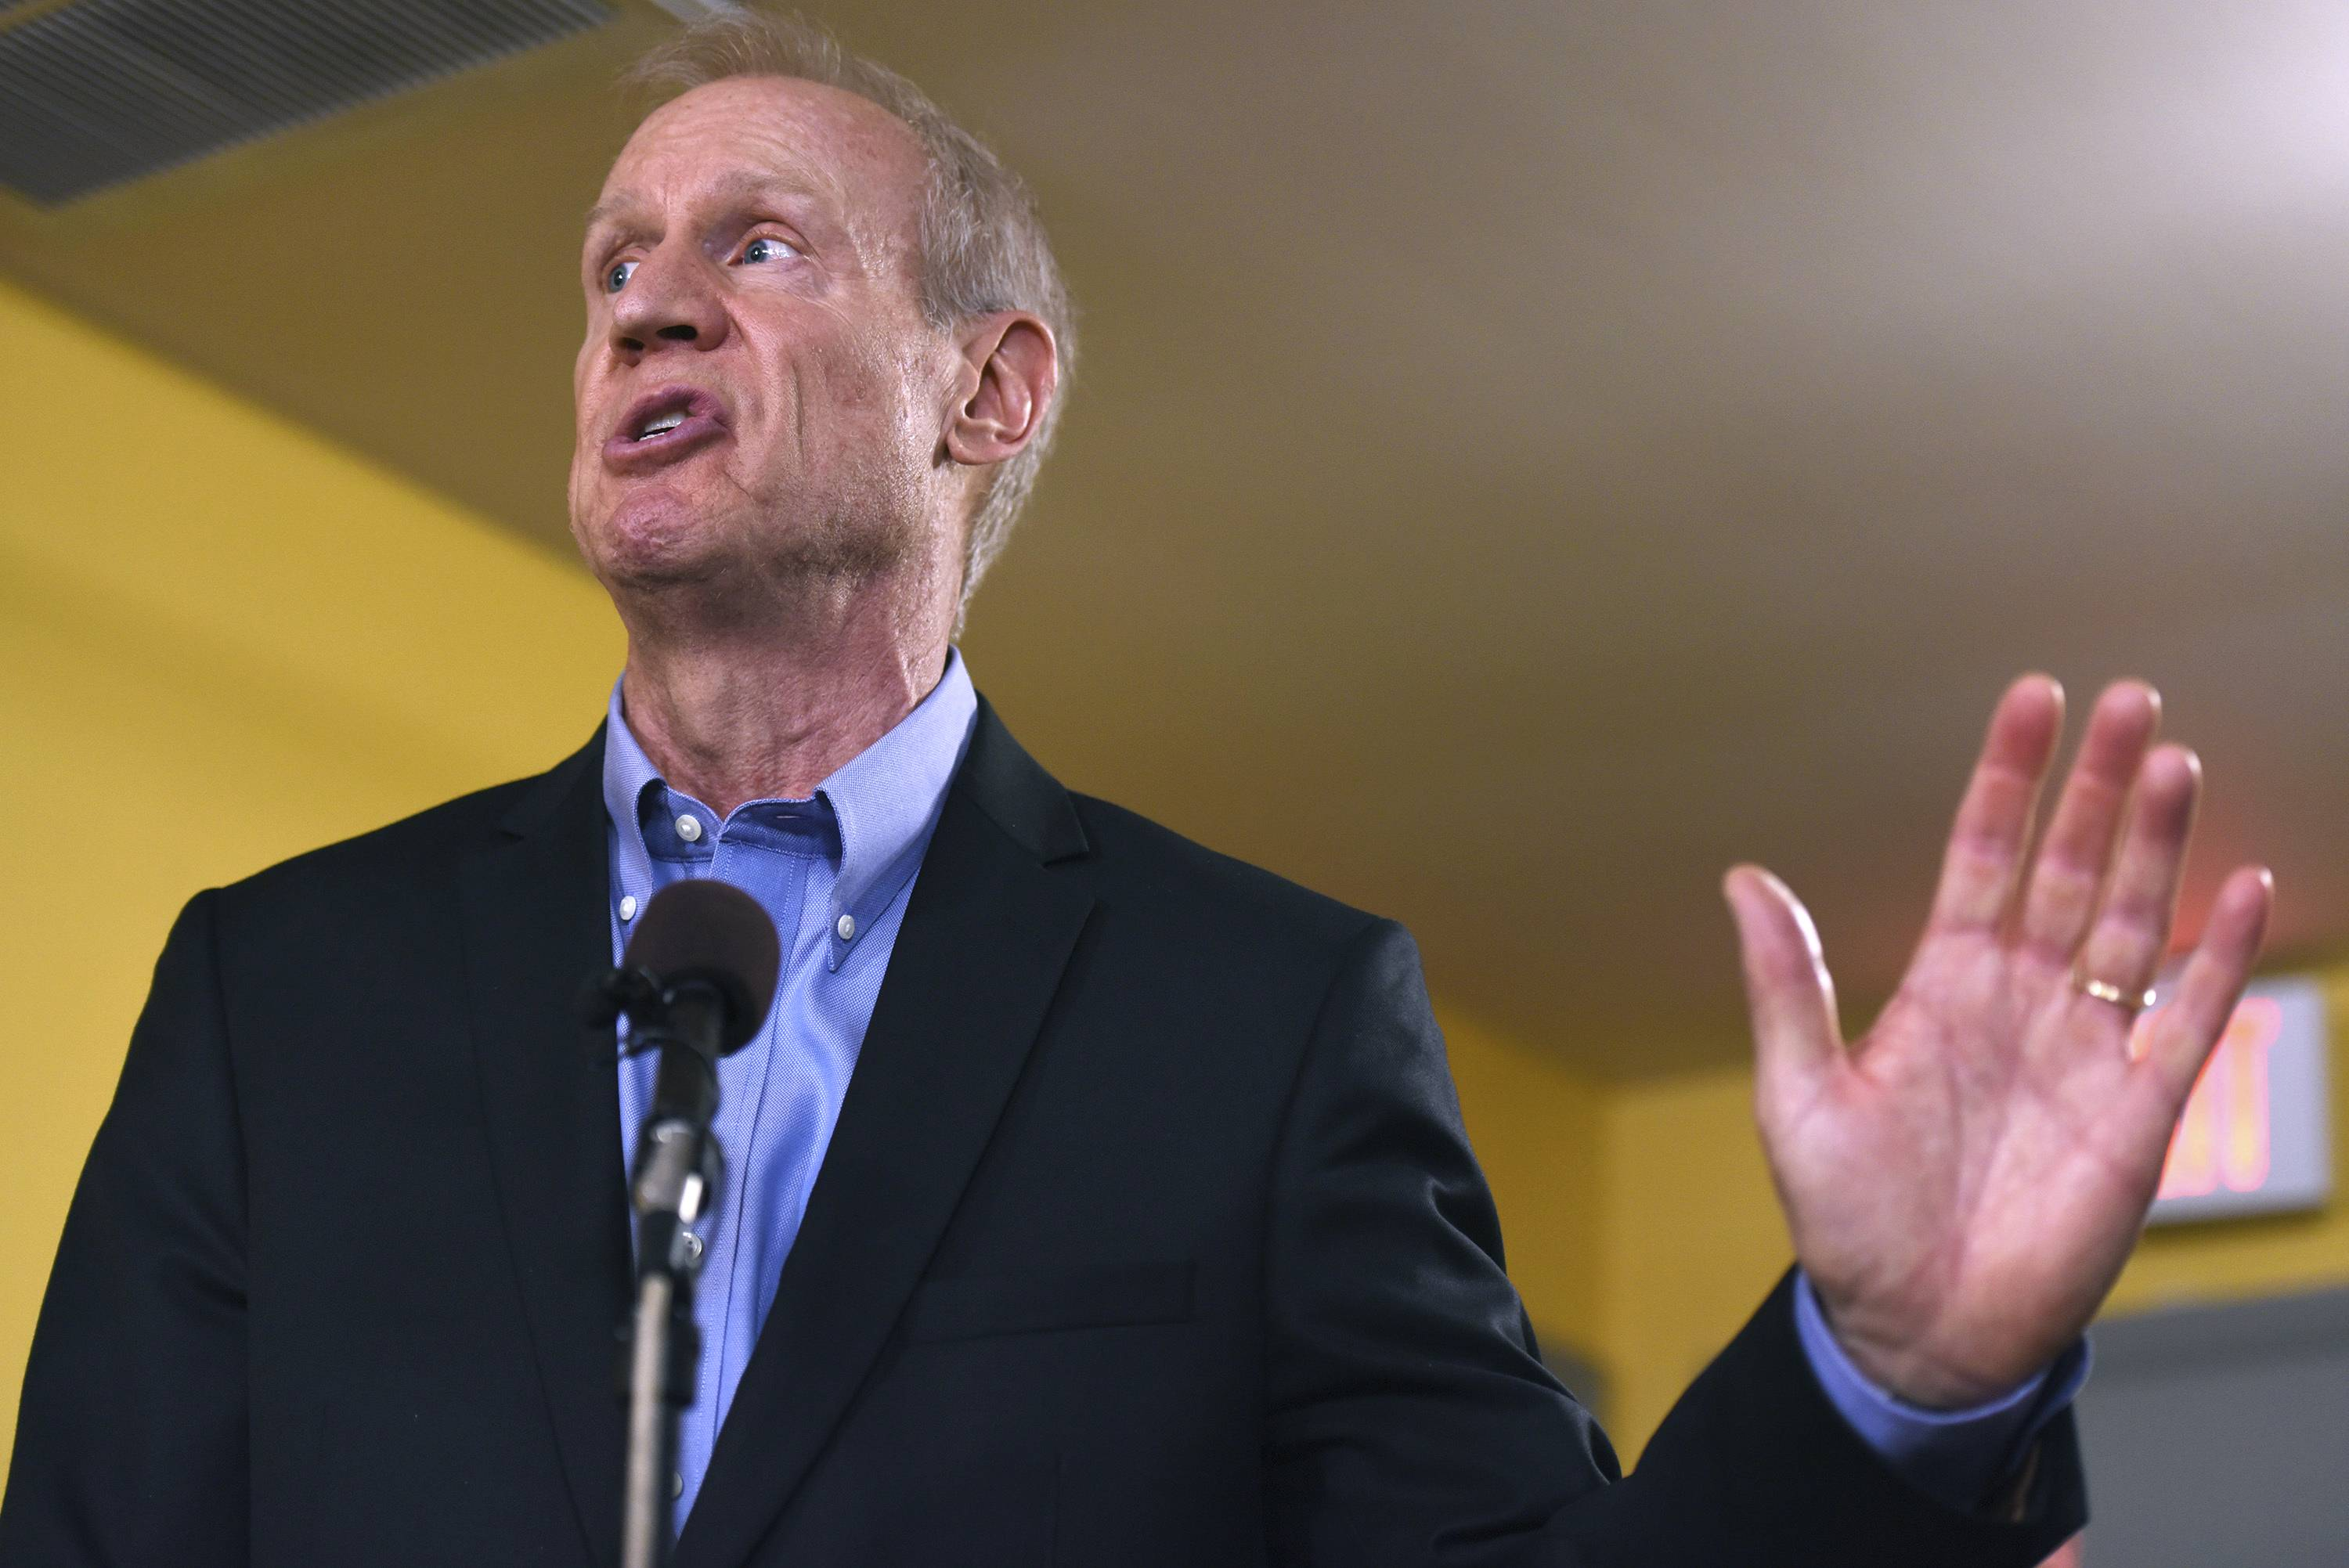 Illinois Gov. Bruce Rauner speaks during a news conference, Wednesday, July 5, 2017, in Chicago. Governor Rauner vetoed on Tuesday a package of legislation that raised the income tax by a permanent 32 percent to finance a $36 billion spending plan, which would be Illinois' first budget since 2015. Michael Madigan, the speaker of the Illinois House has scheduled a vote for Thursday to override the governor's veto of budget package, ending a budget stalemate that has lasted more than two years.